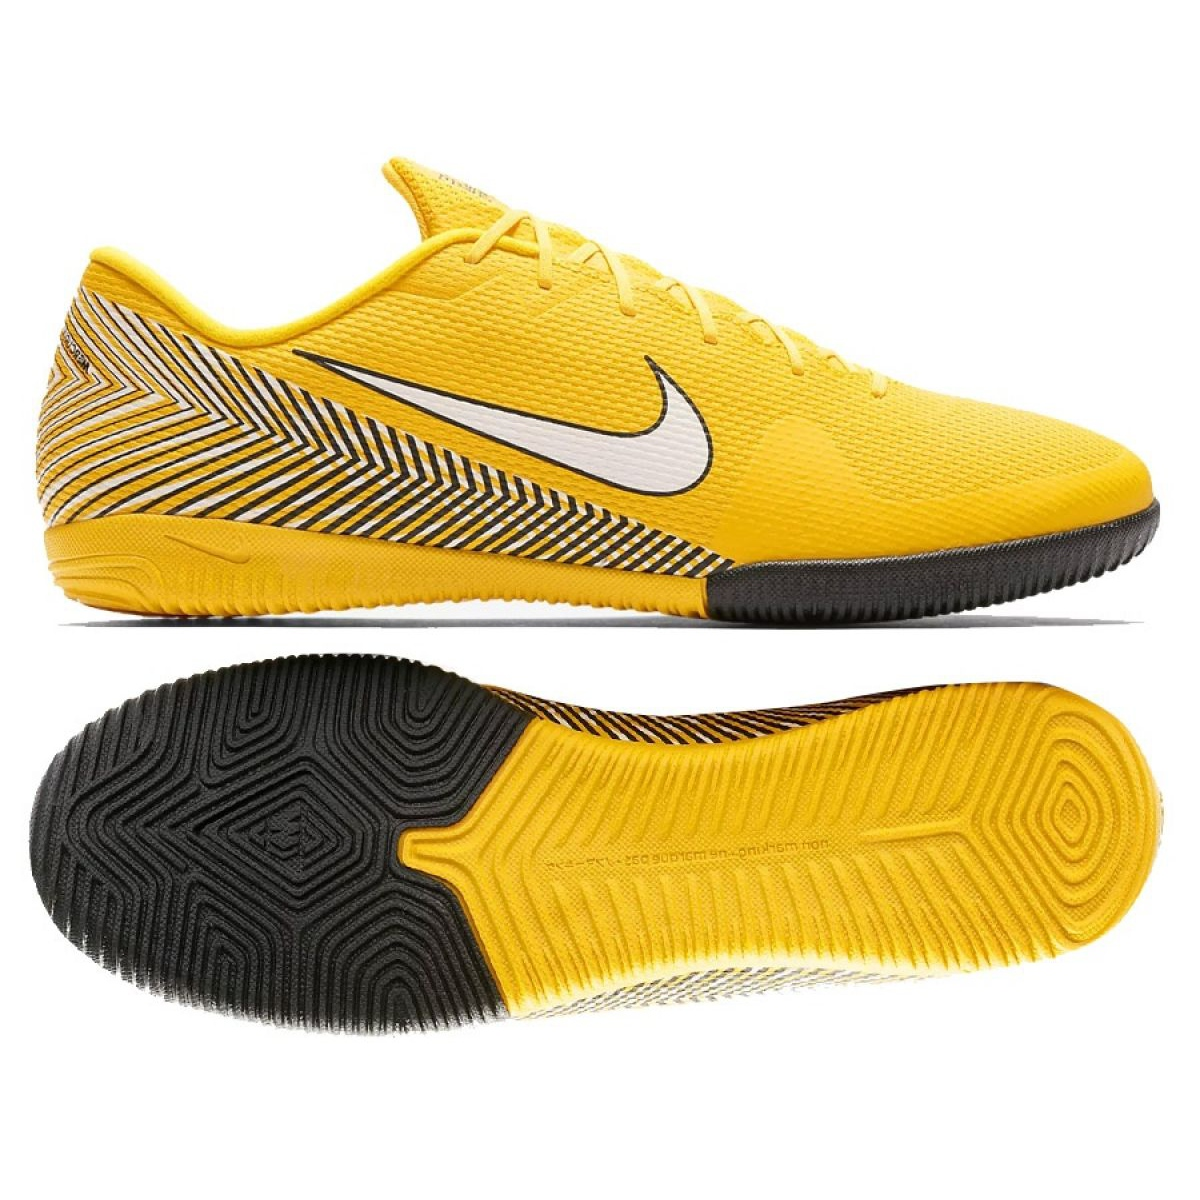 De 710 Football Mercurial Neymar Chaussures 12 Ic Academy Ao3122 Jr Nike Vapor CBxedo